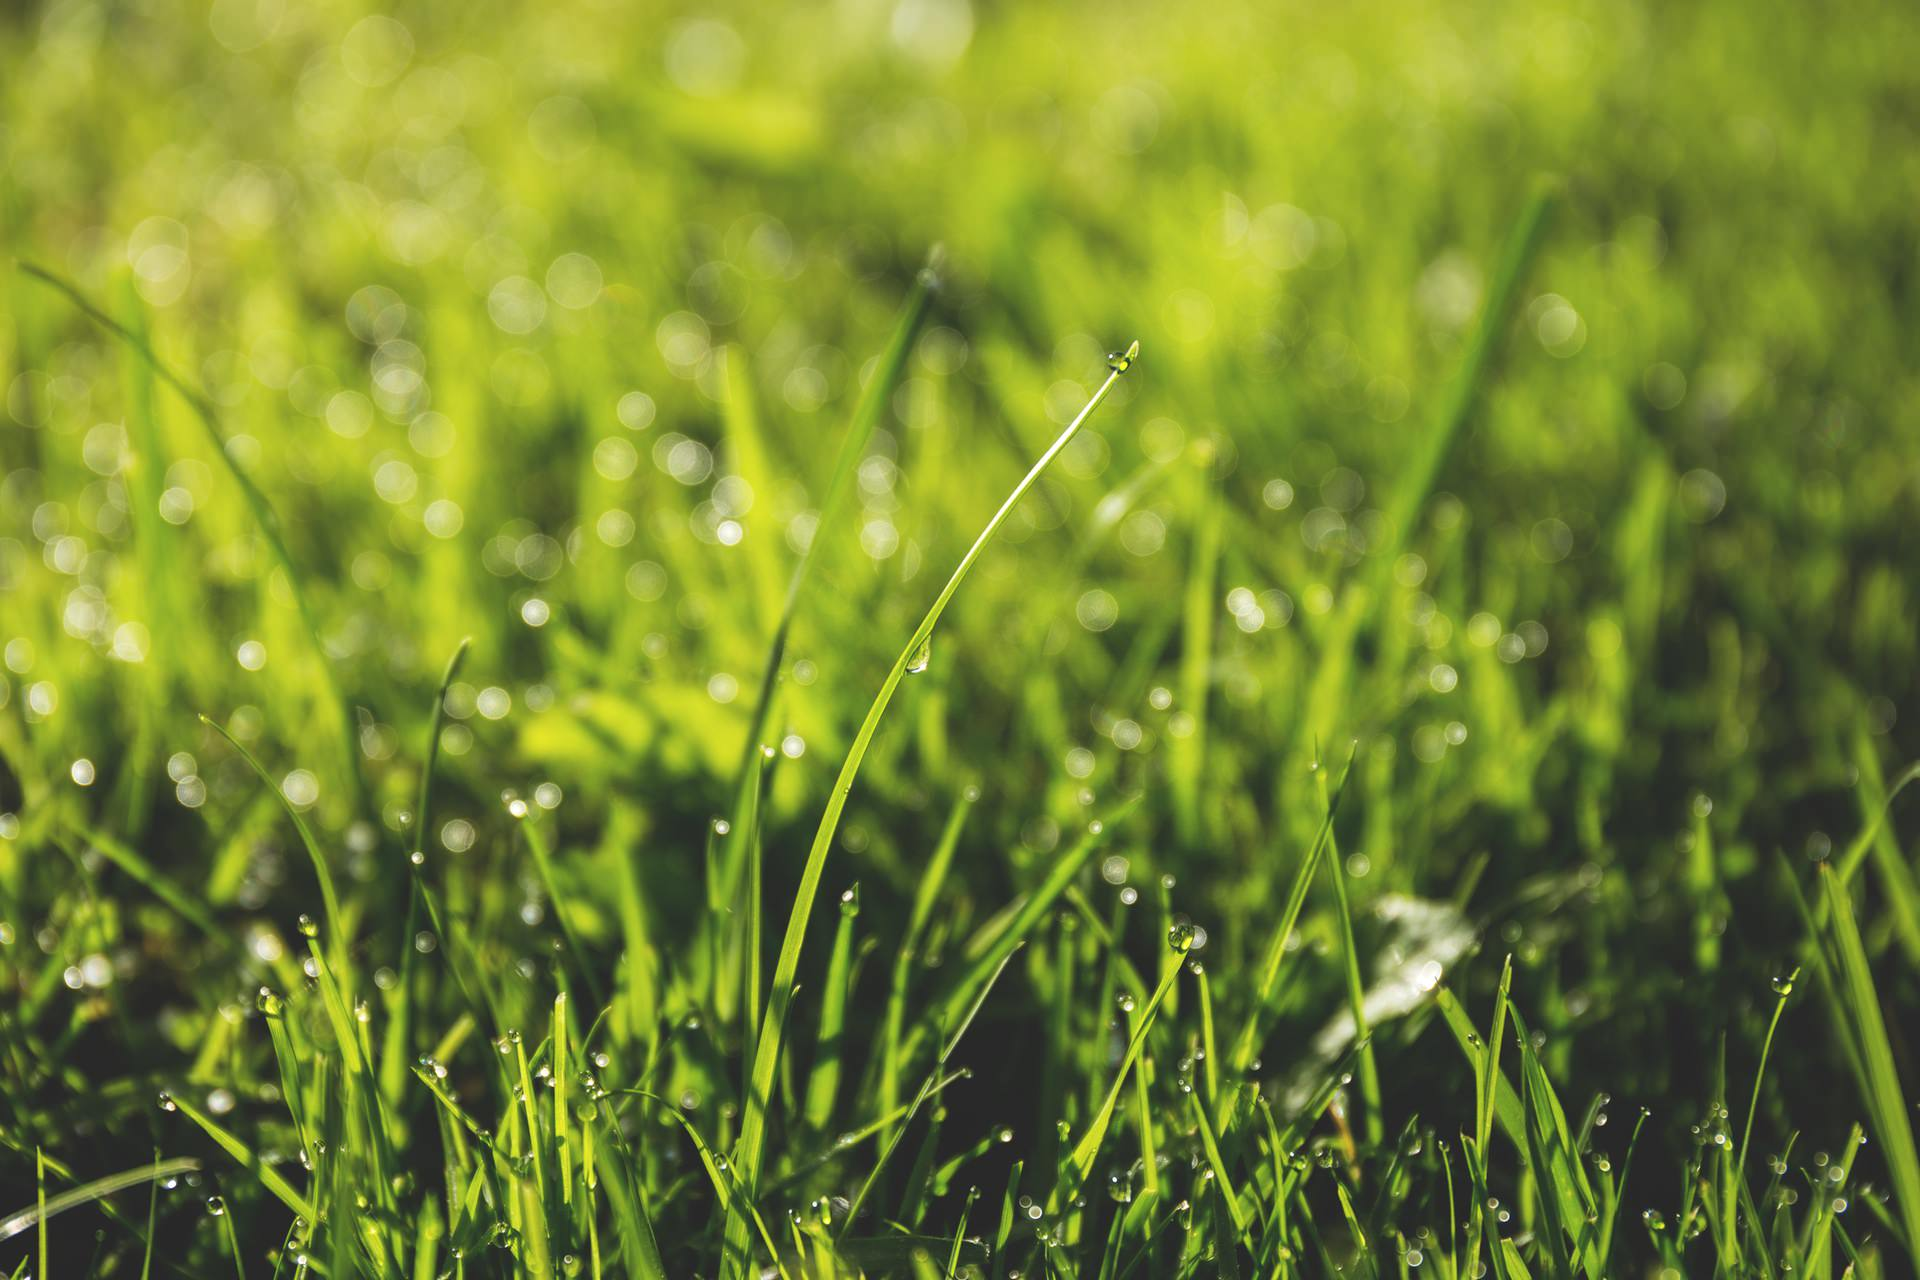 Taking Care of Your Western Missouri Lawn Without Wasting Resources